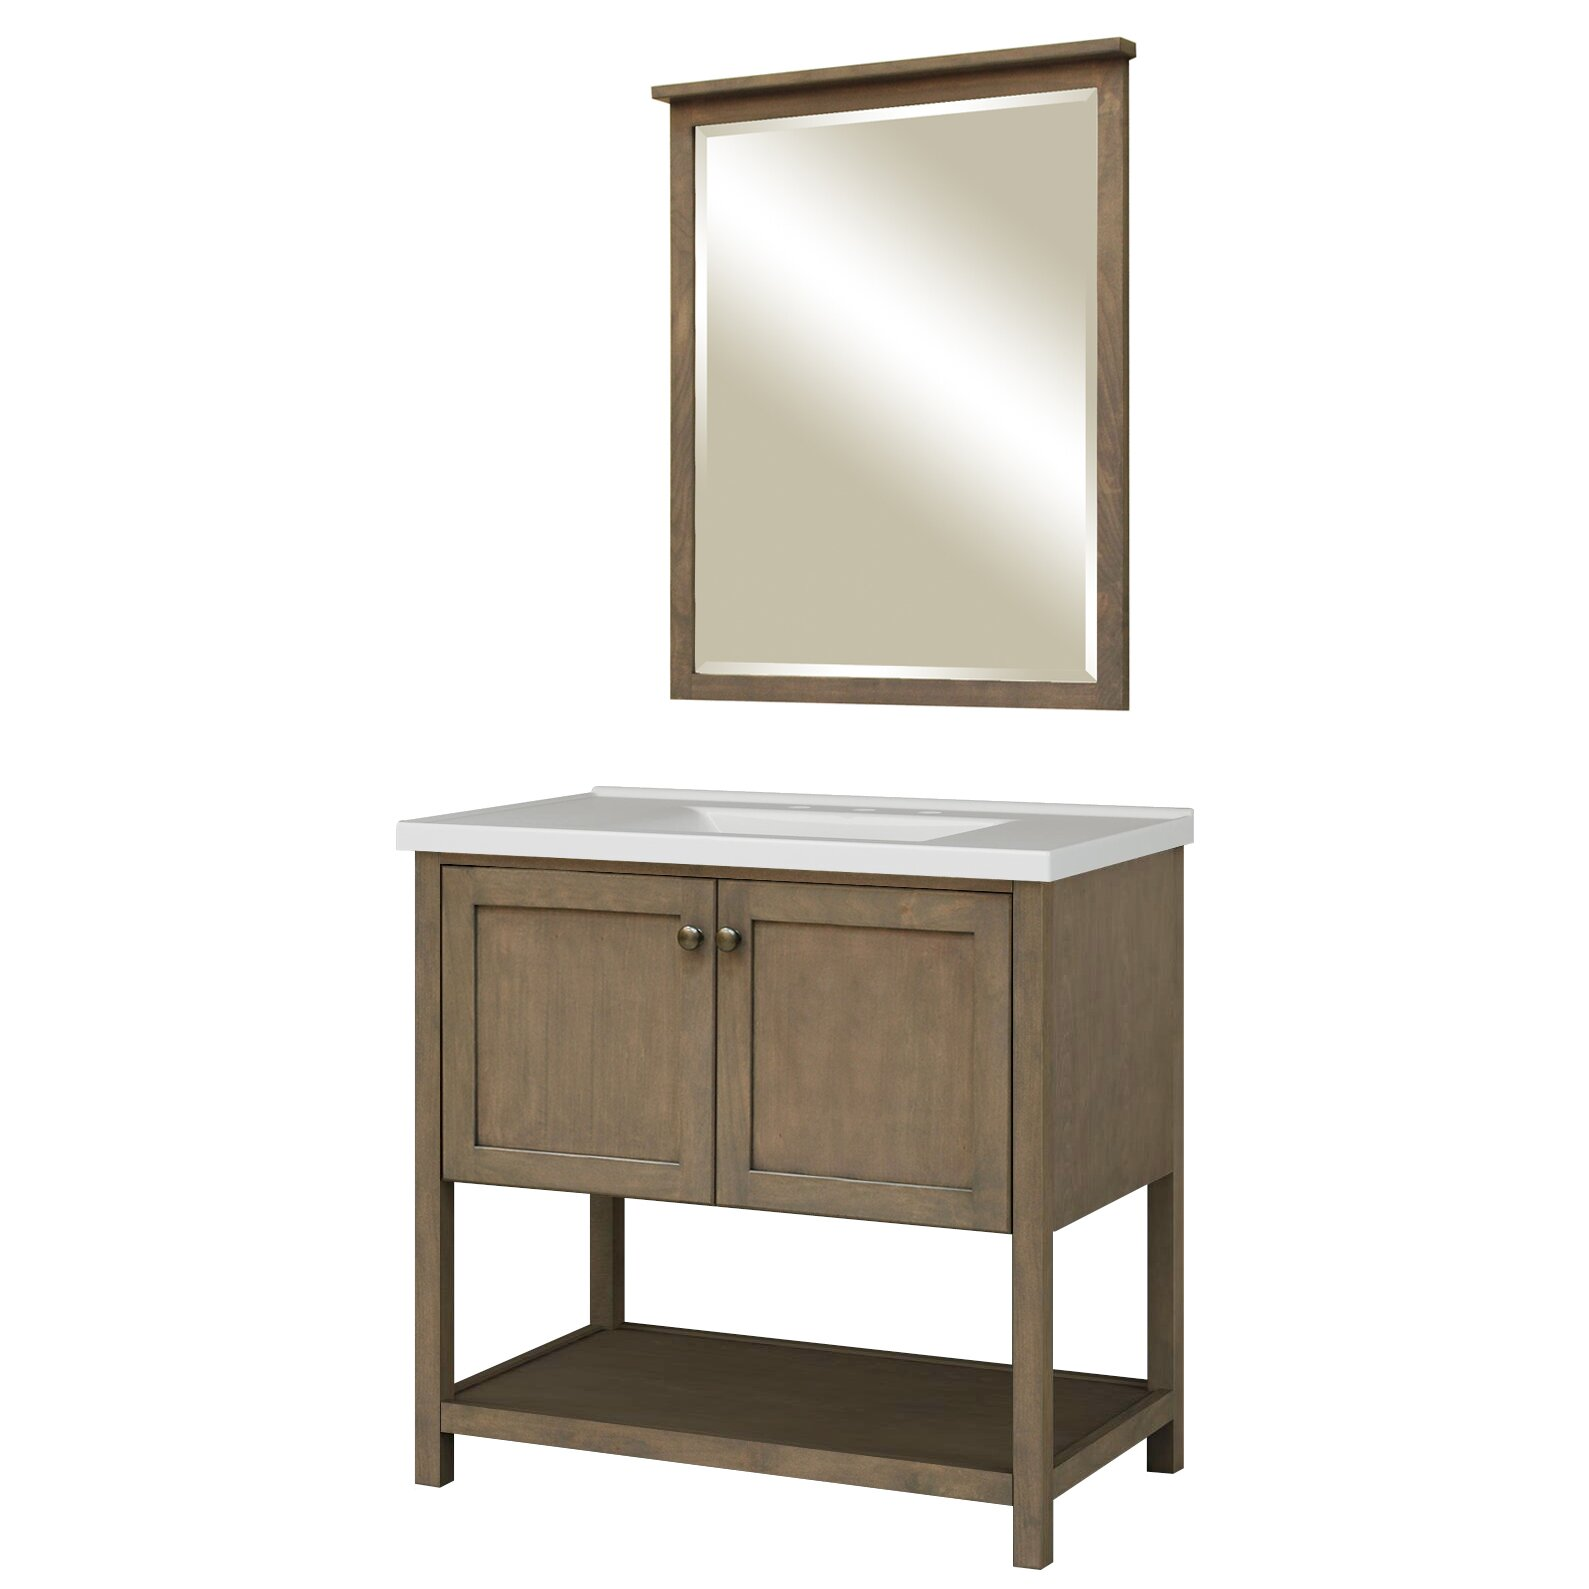 Sunny wood premier tops 37 bathroom vanity top with for Bathroom vanity tops